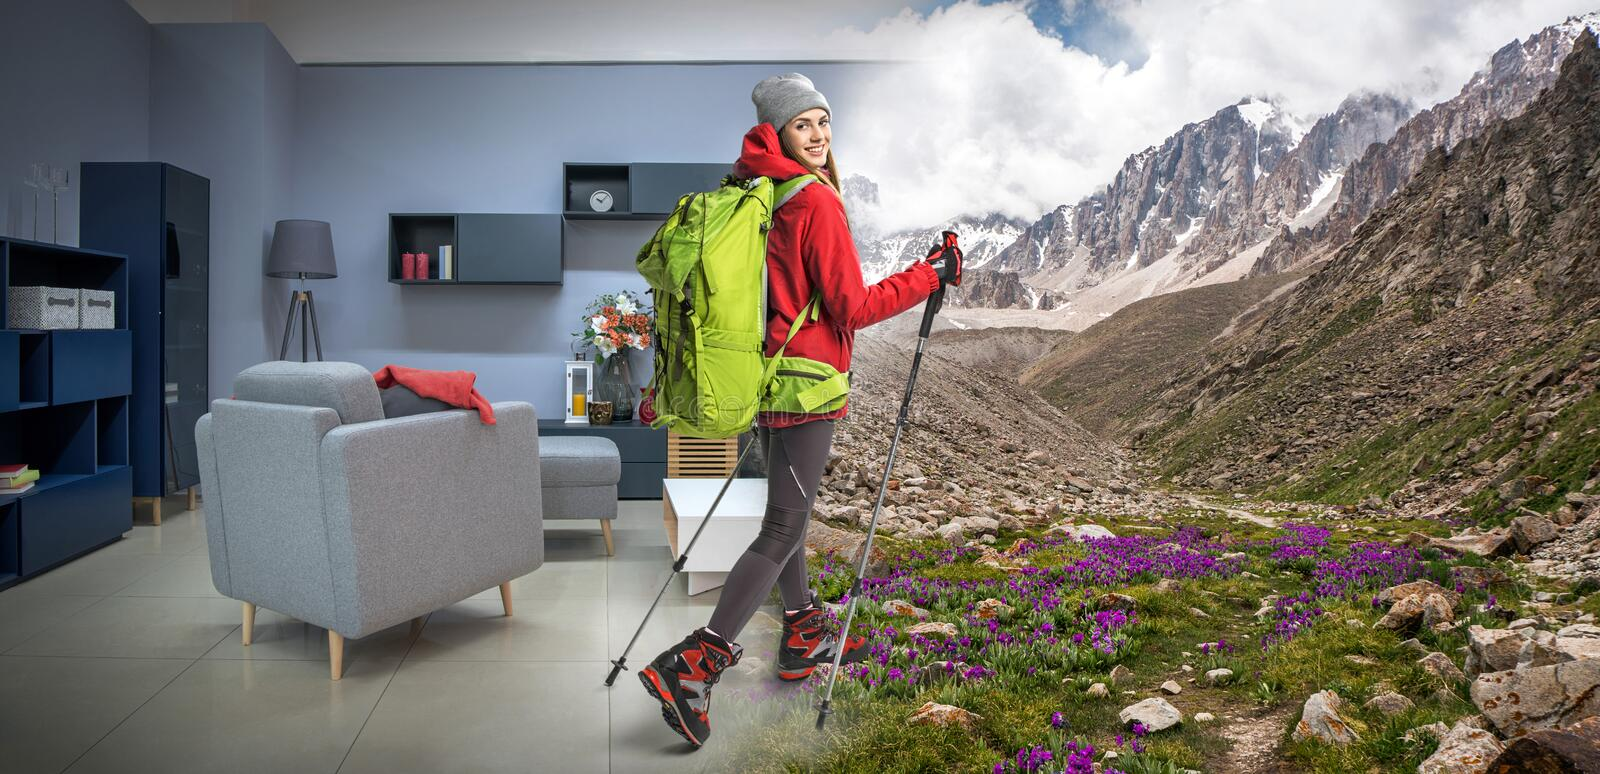 young sportswoman with backpack and hiking equipment dreaming about hiking royalty free stock photography